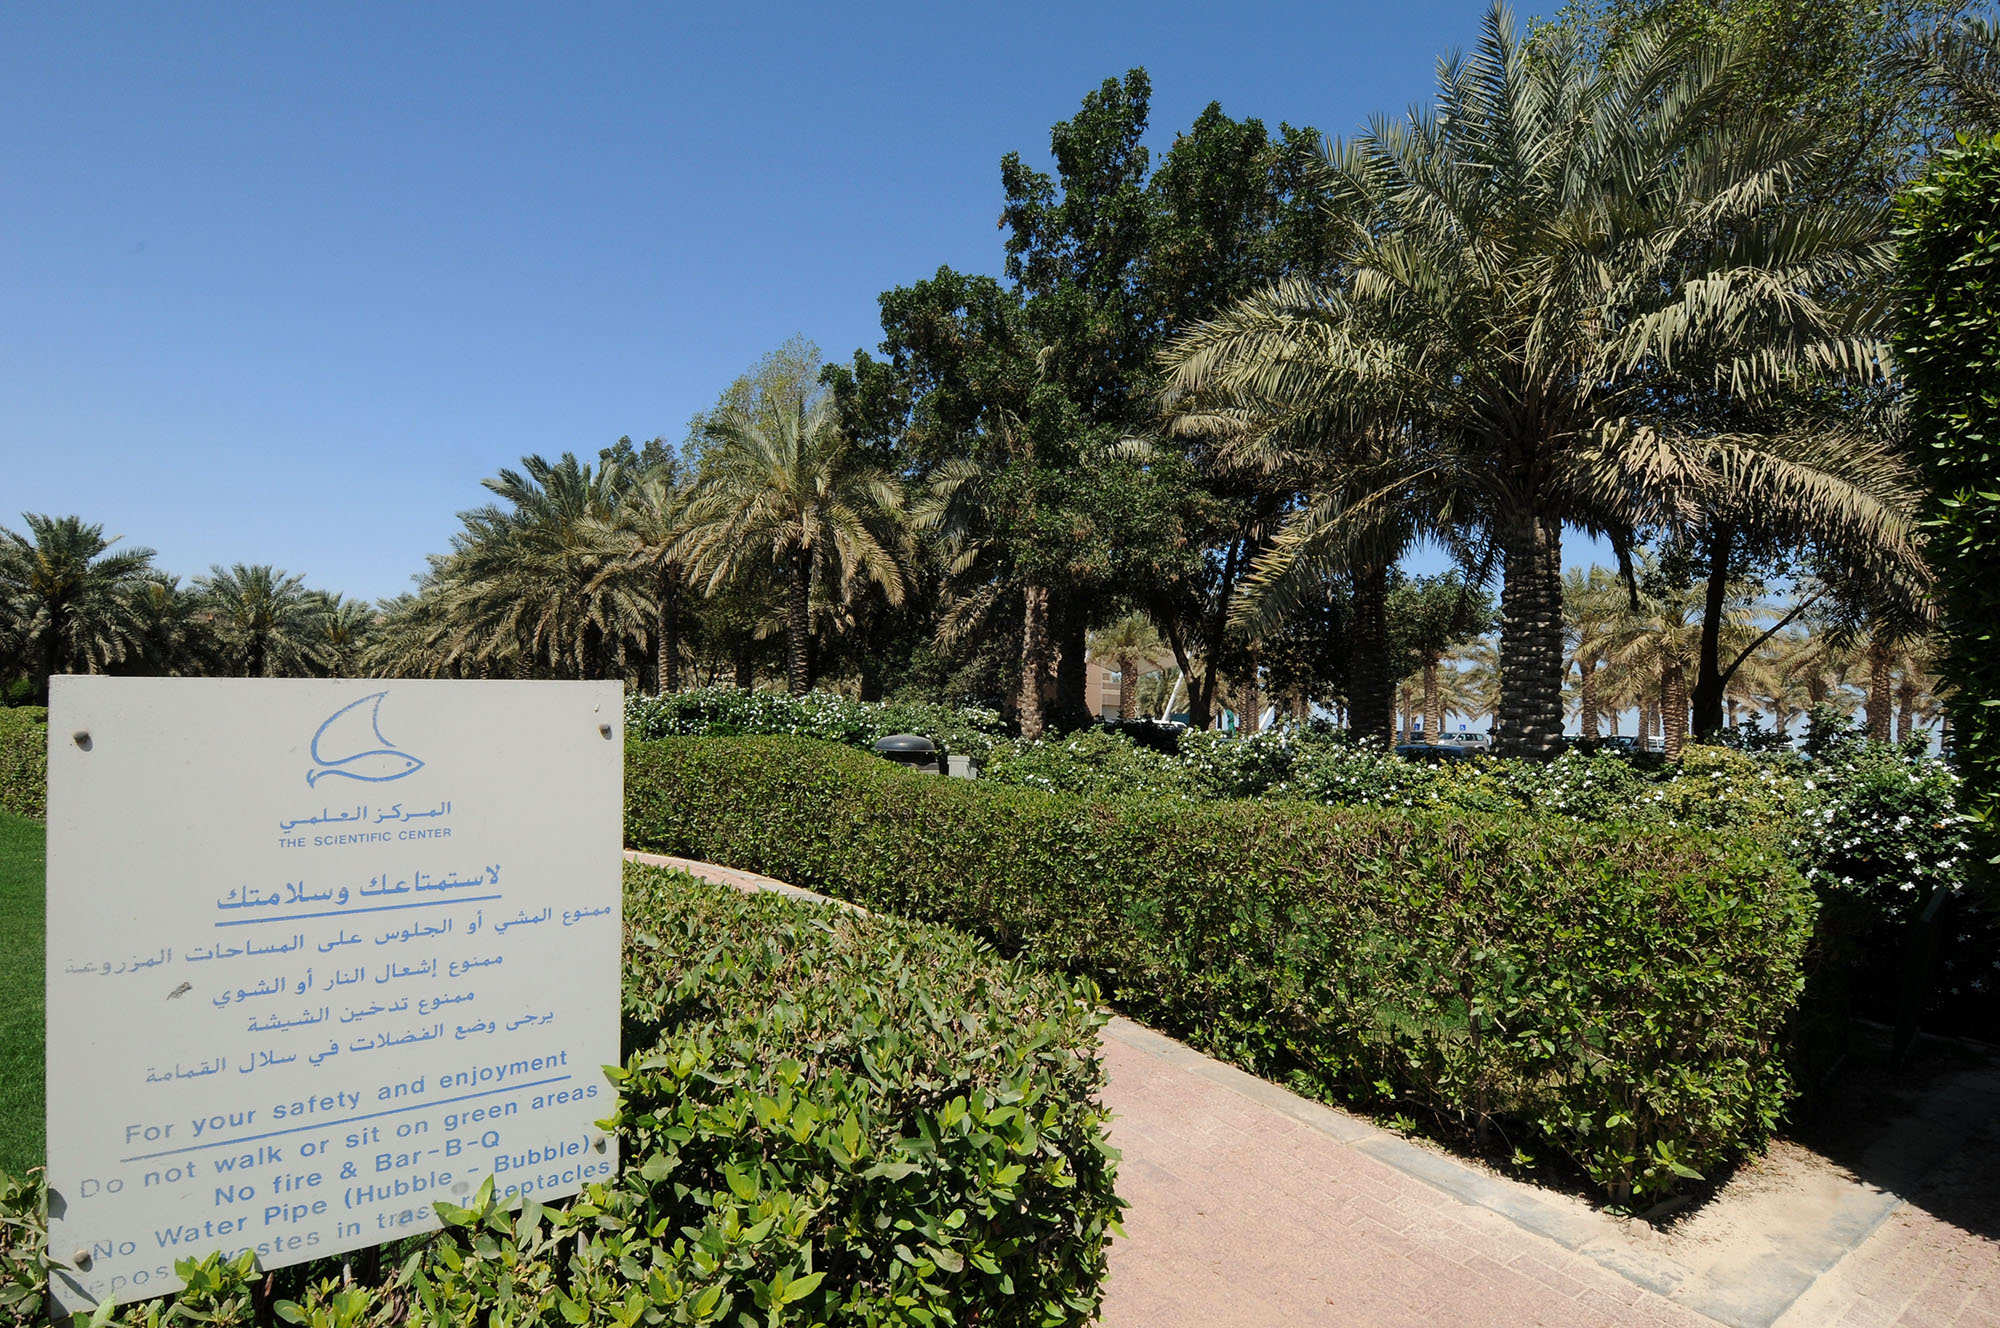 The Scientific Center Promenade